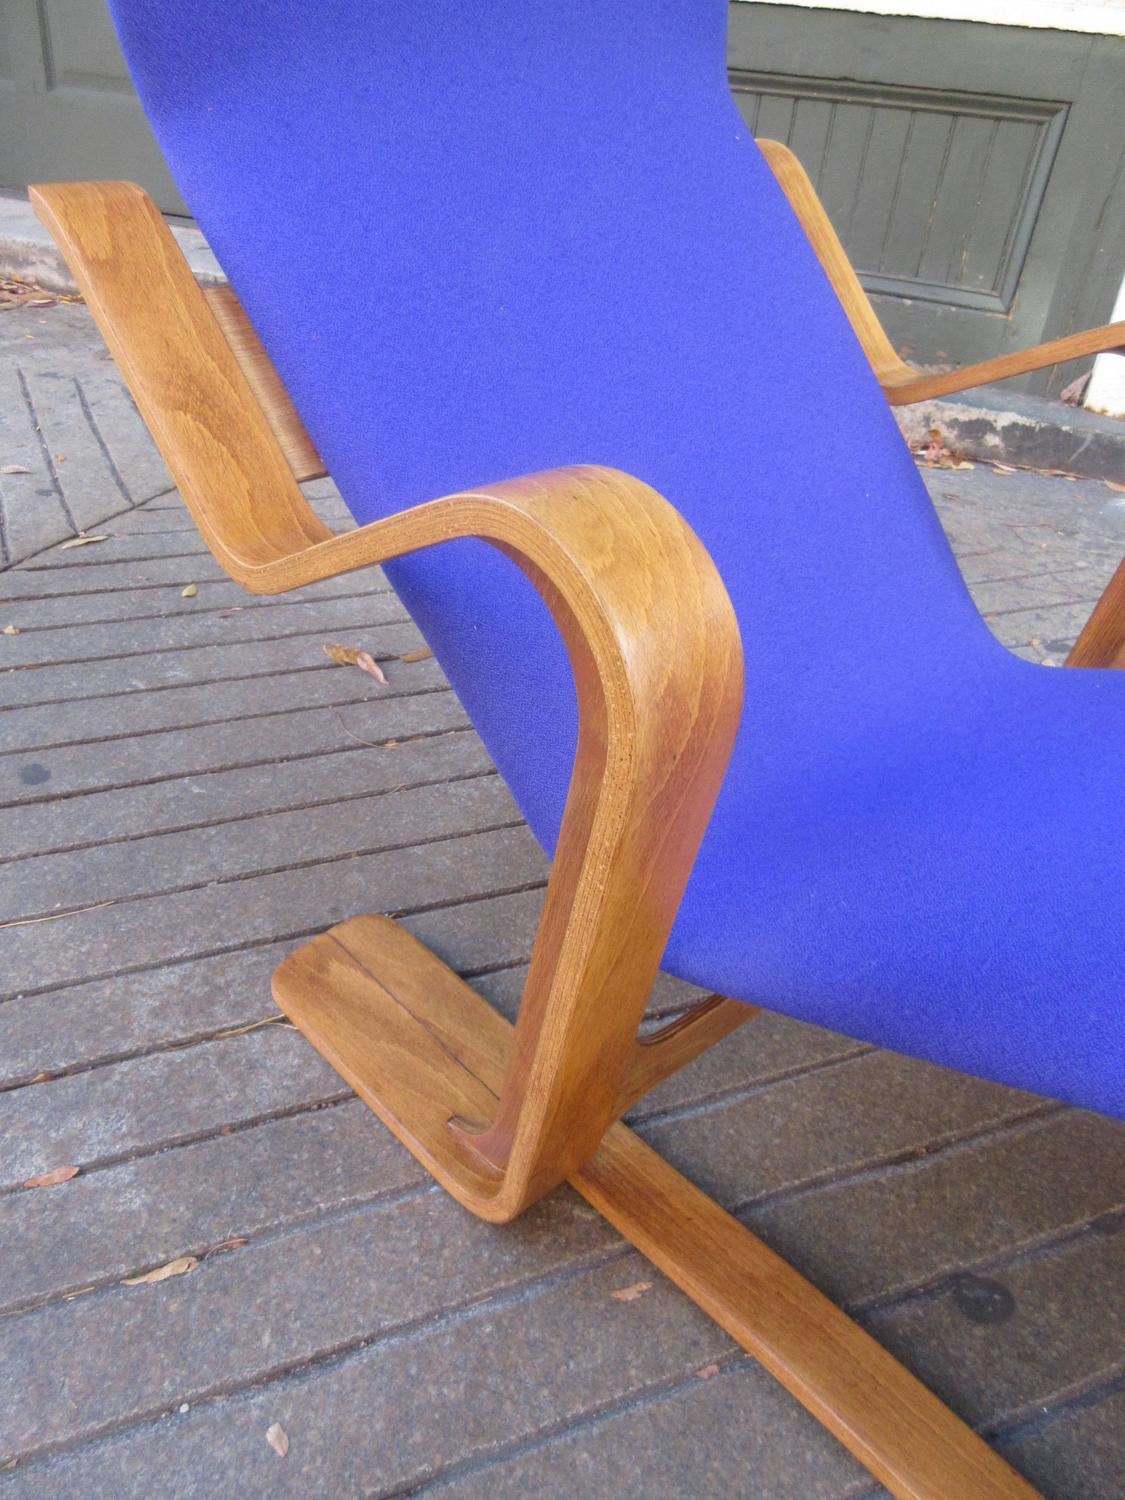 Marcel breuer for isokon modernist bent plywood chaise for Breuer chaise longue